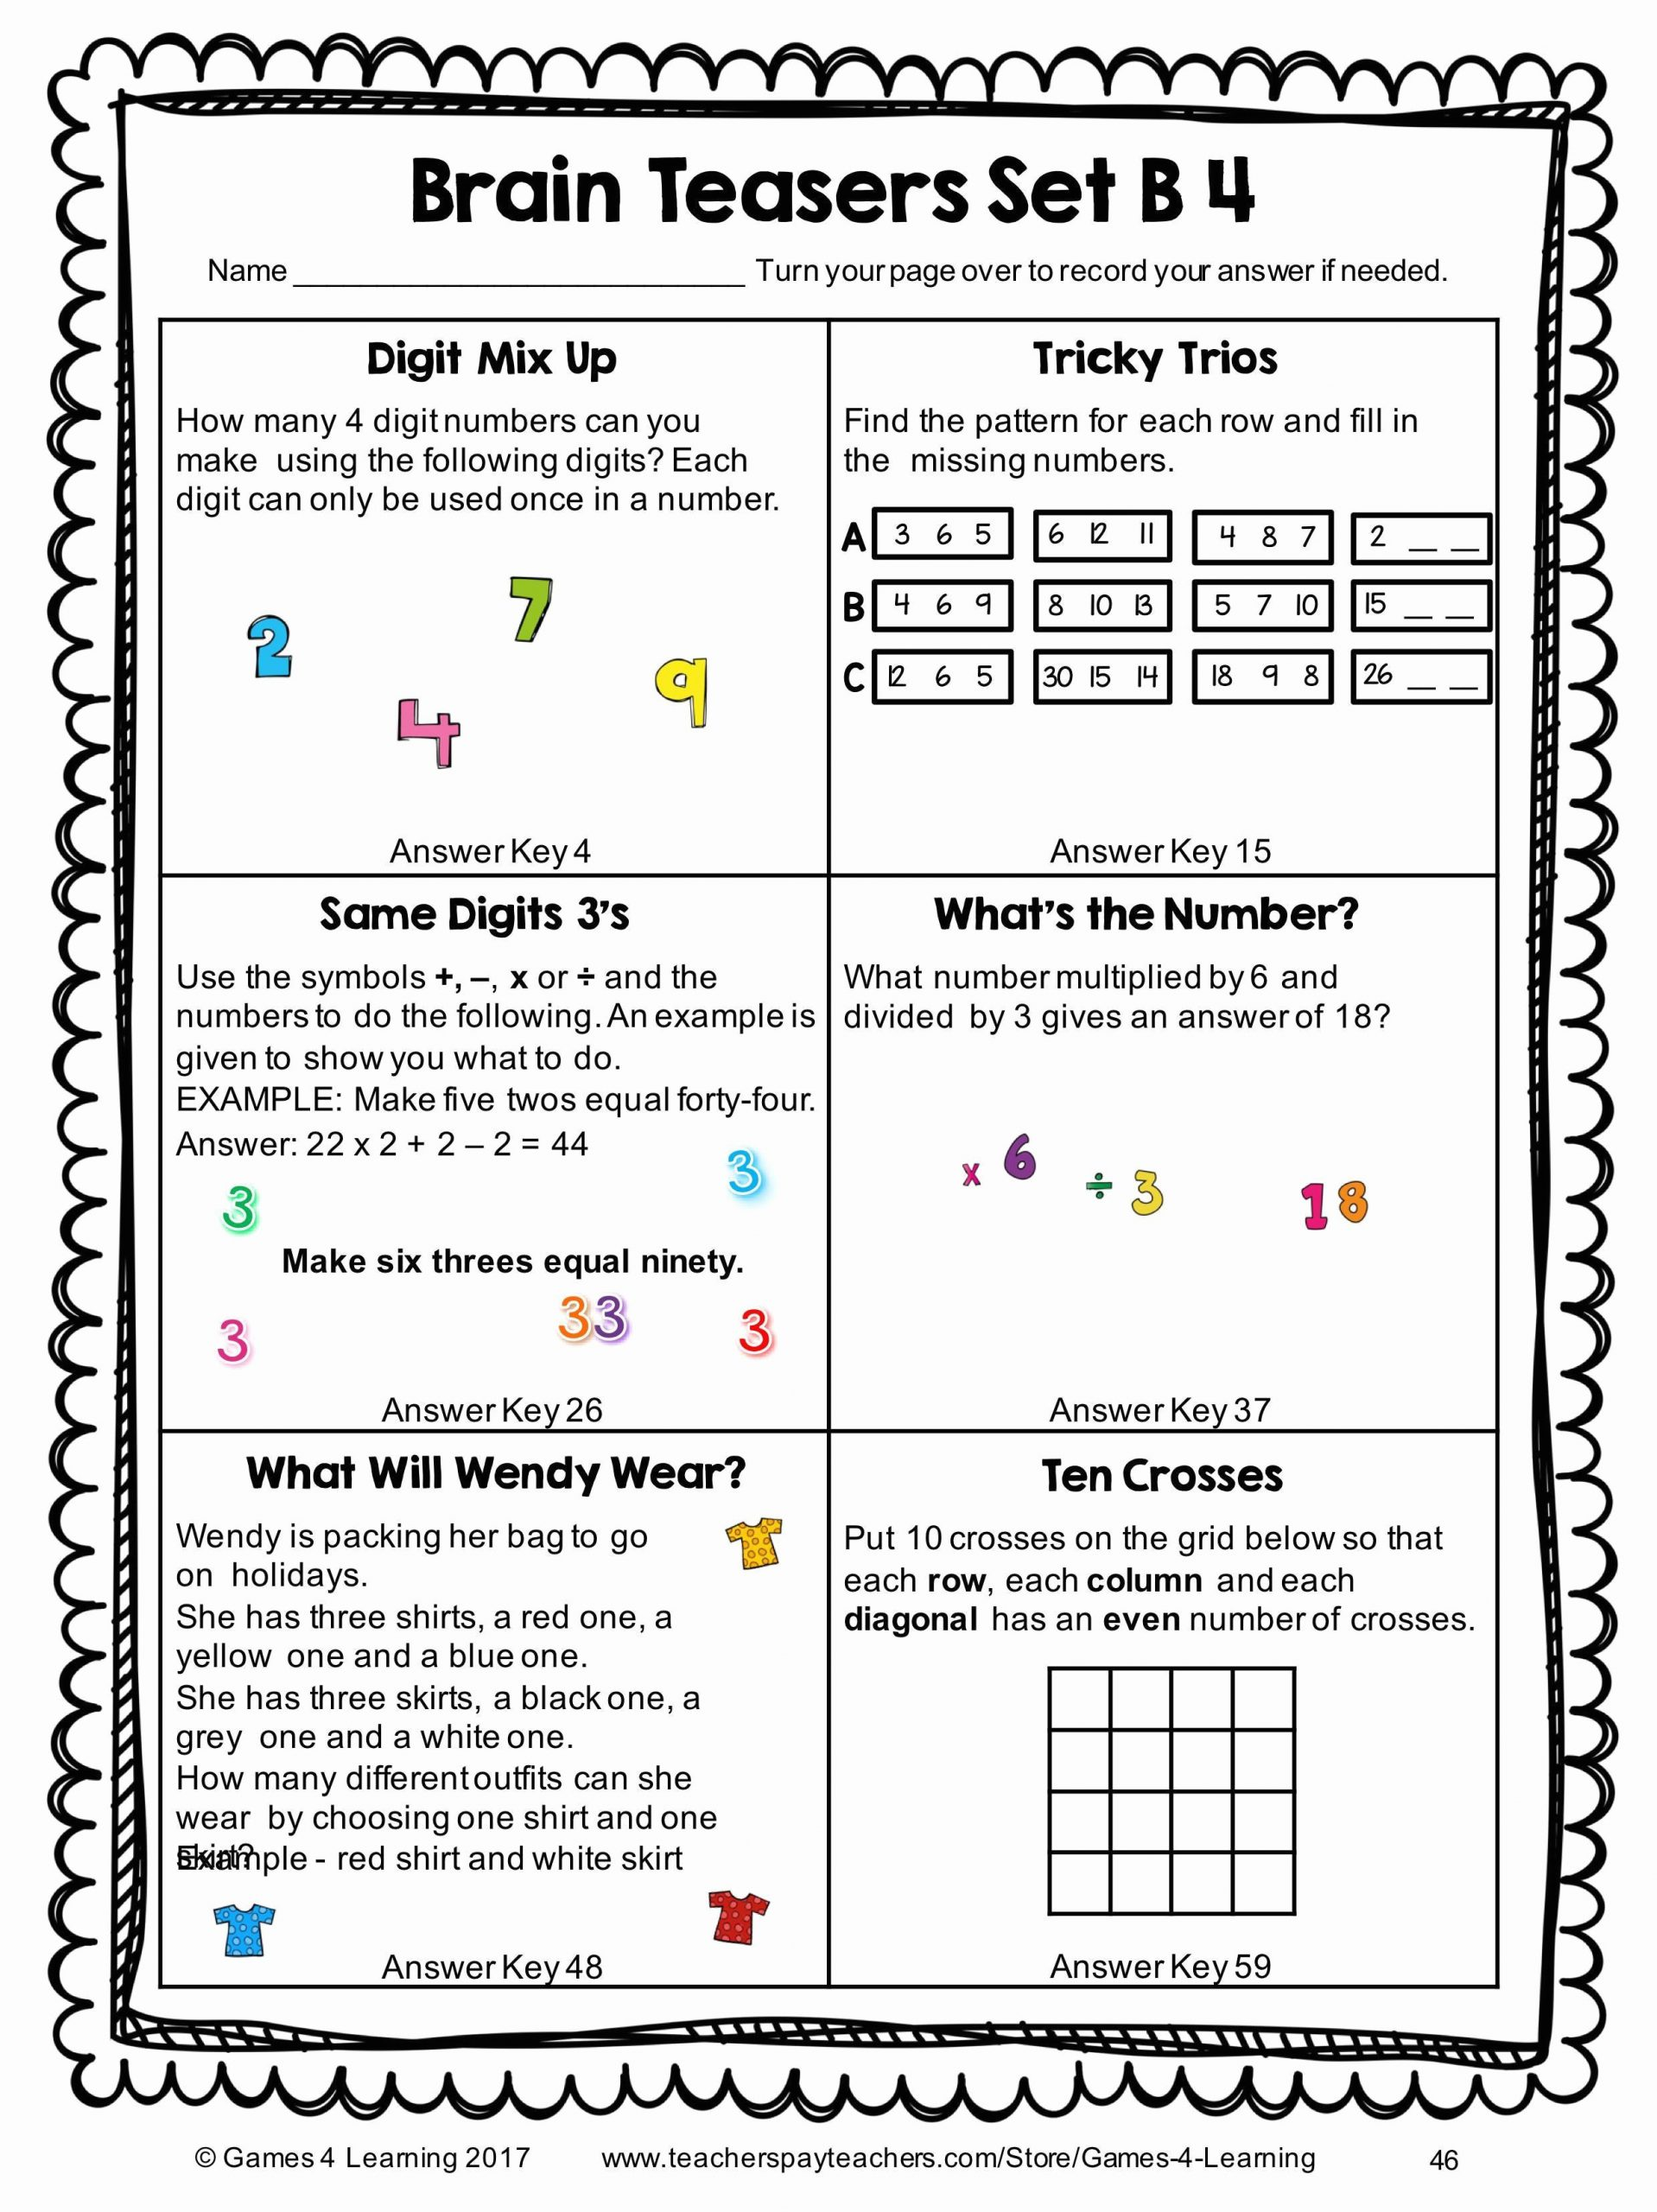 Brain Teaser Printable Worksheets 6th Grade Brain Teasers Worksheets